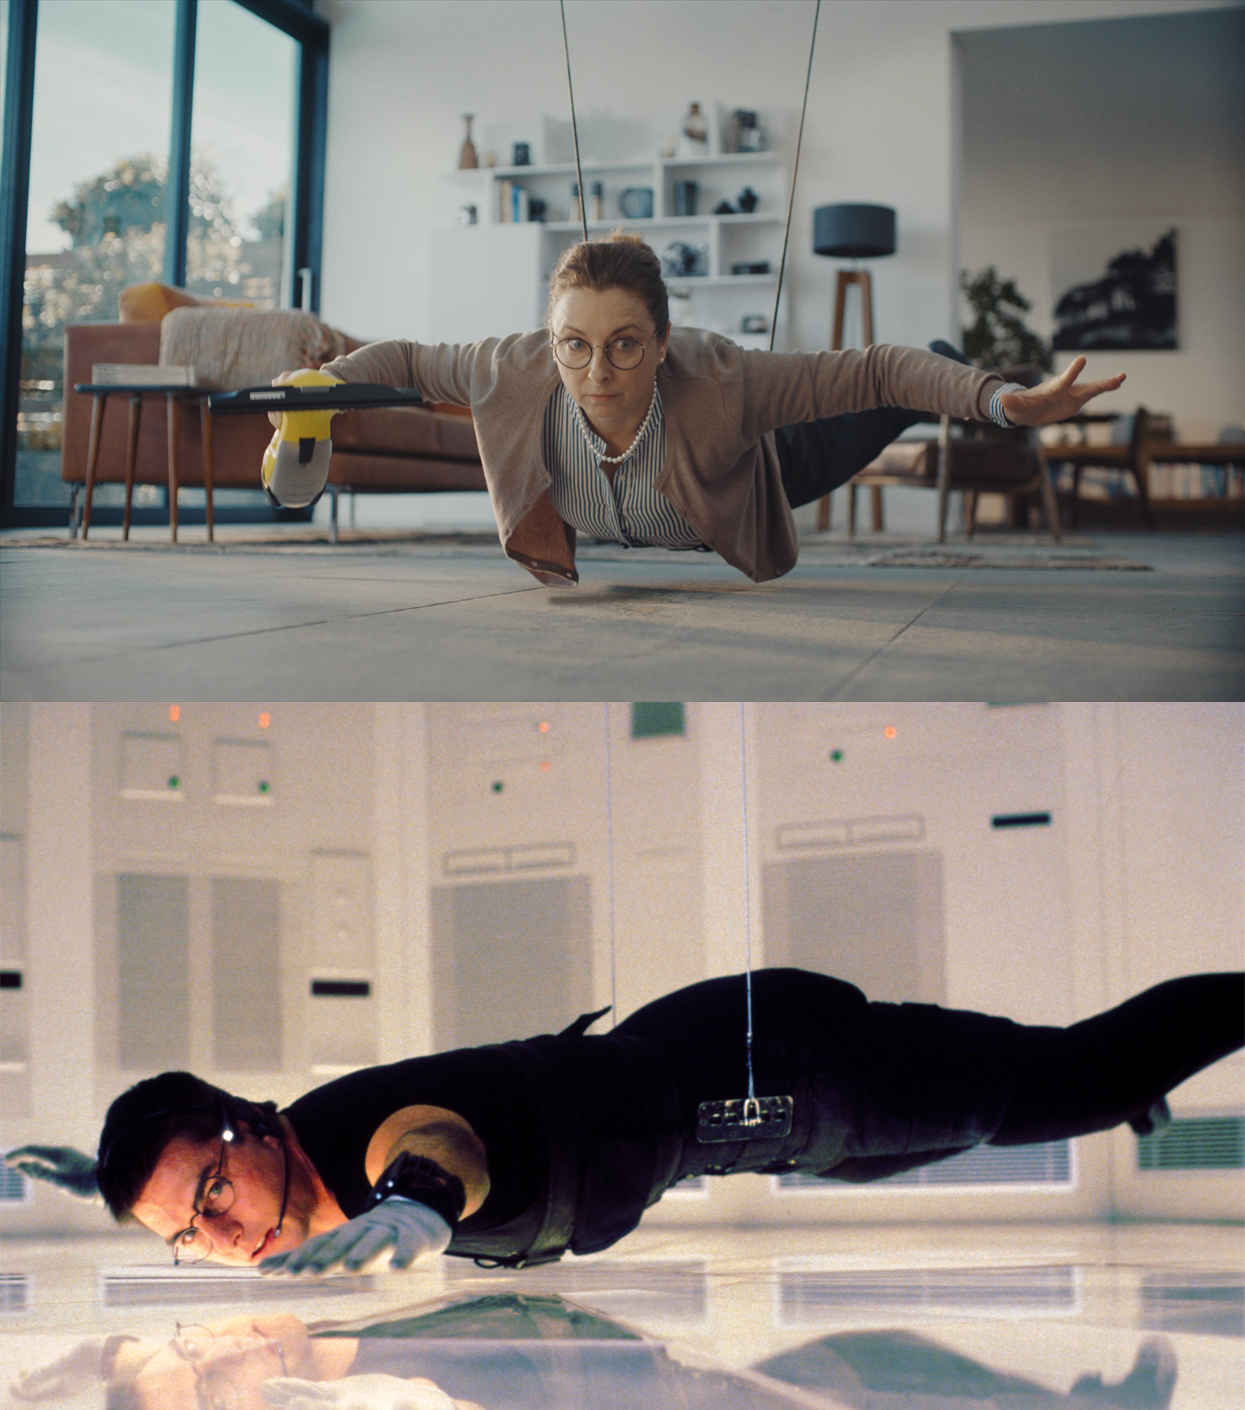 TM & COPYRIGHT (C) 1996 BY PARAMOUNT PICTURES. ALL RIGHTS RESERVED. MISSION: IMPOSSIBLE TM IS  A TRADEMARK OF PARAMOUNT PICTURES. ALL RIGHTS RESERVED.TM, (R) & Copyright (C) 2013 by Paramount Pictures. All Rights Reserved.